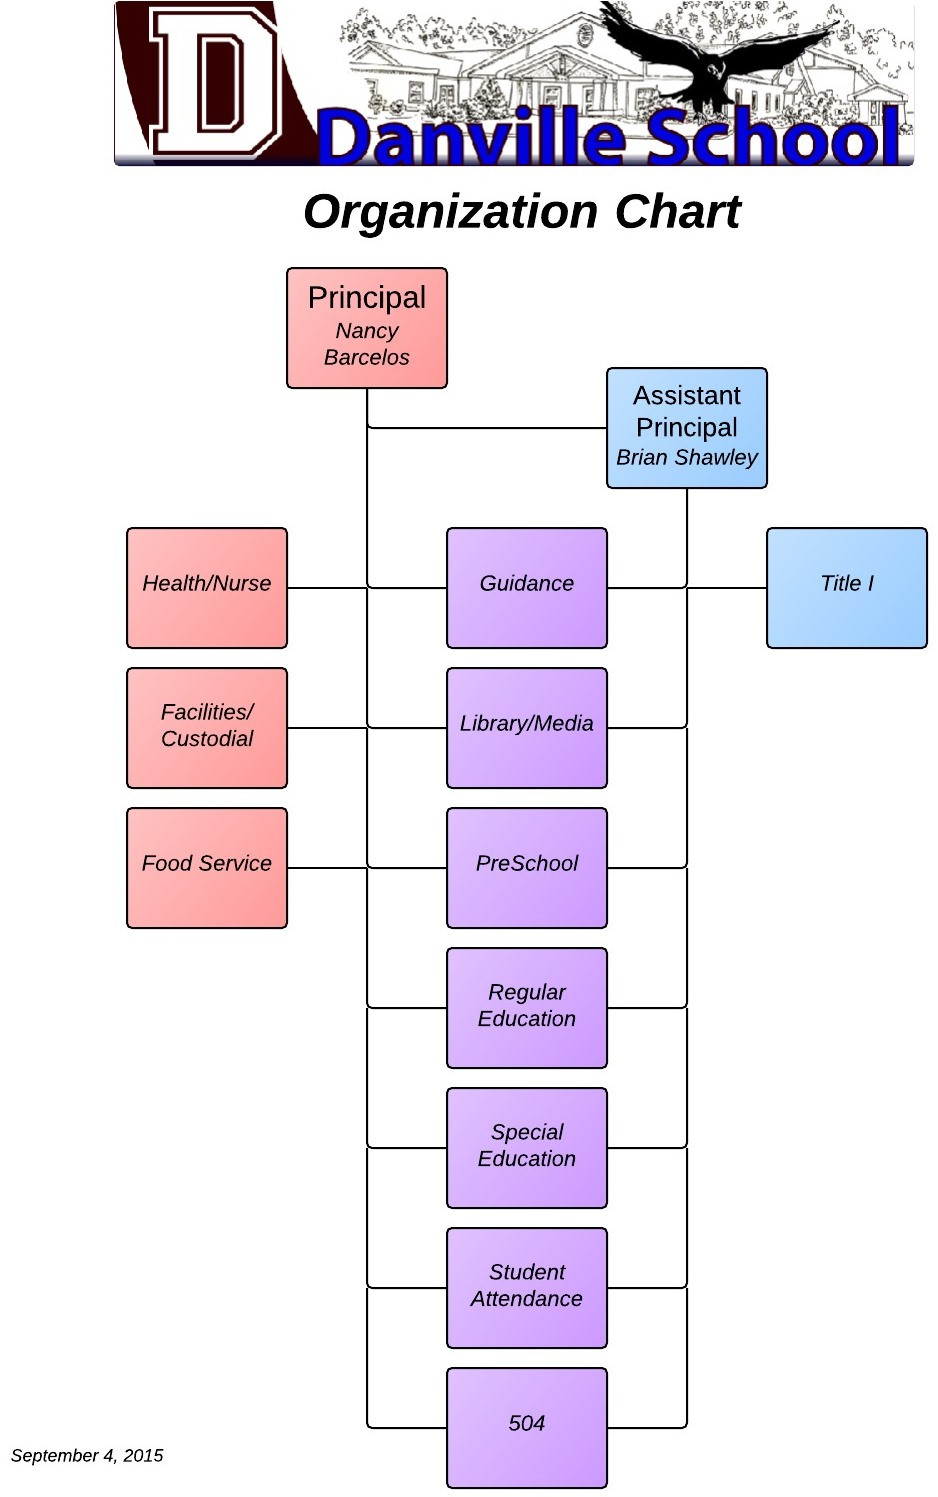 School Organization Charts  organization chart staff line DriverLayer Search Engine